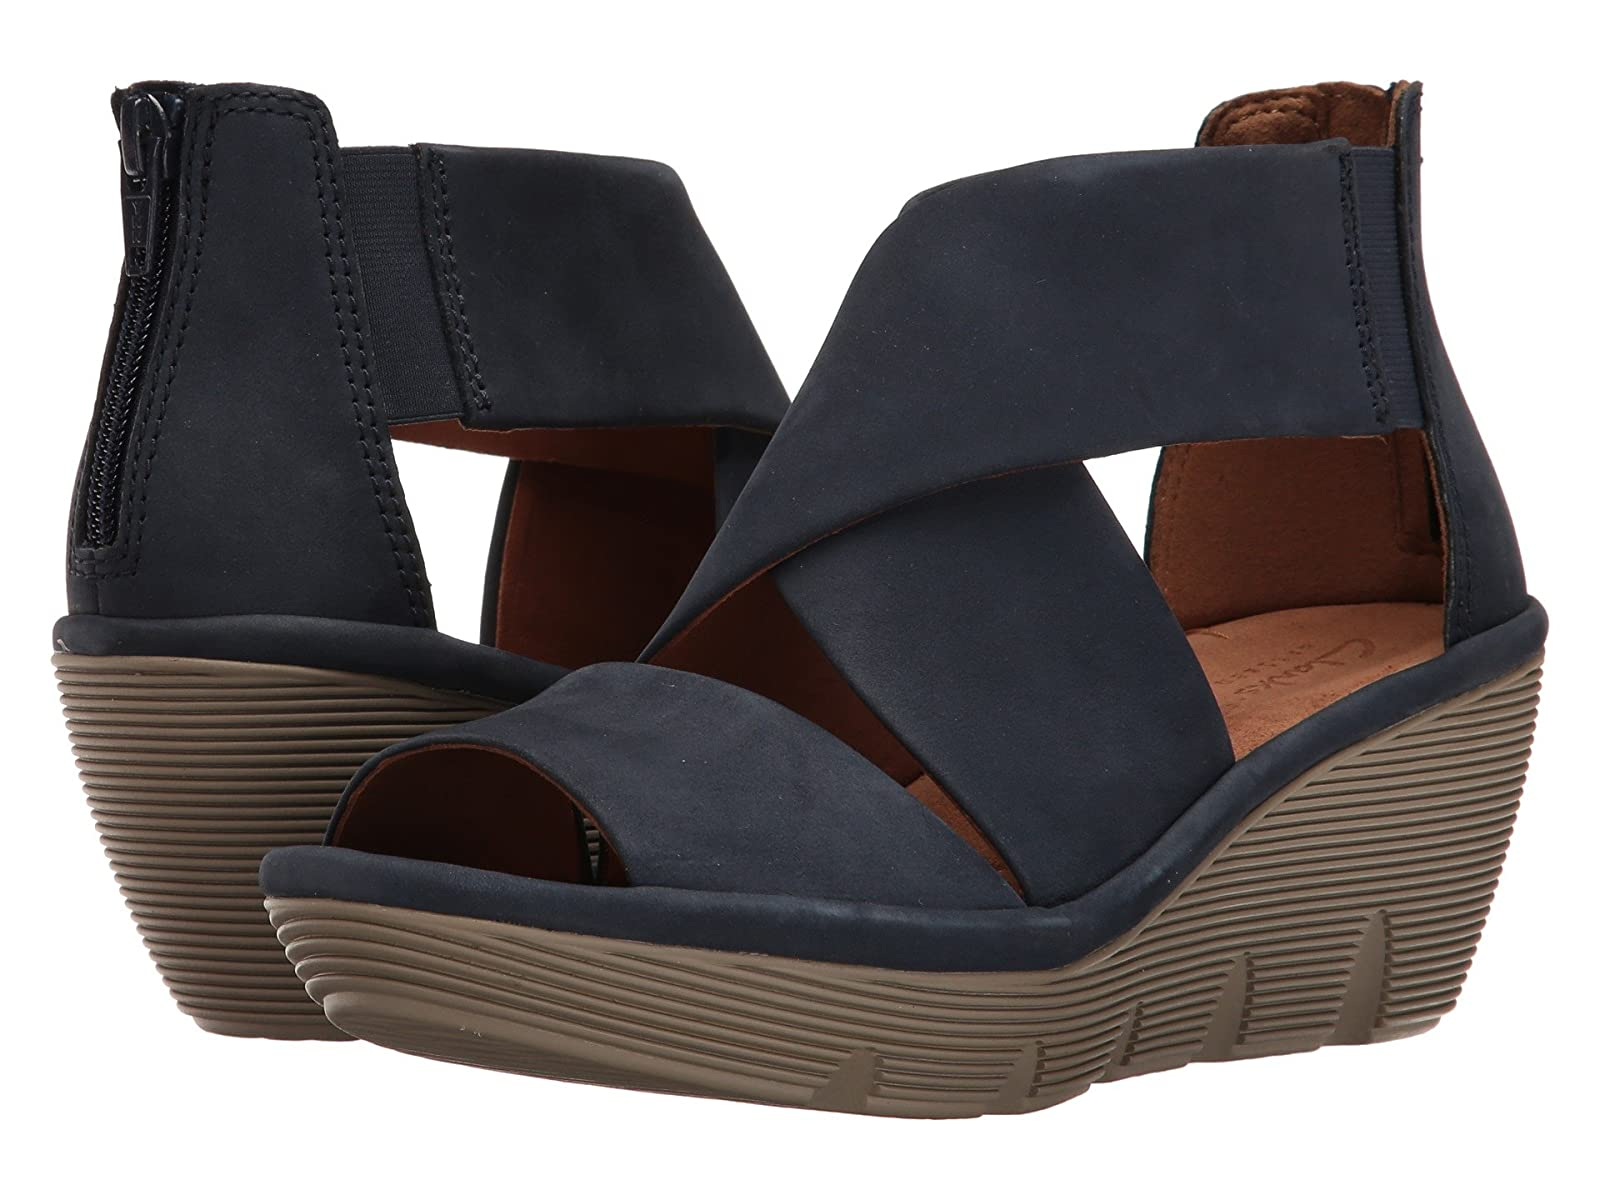 Clarks Clarene GlamourCheap and distinctive eye-catching shoes